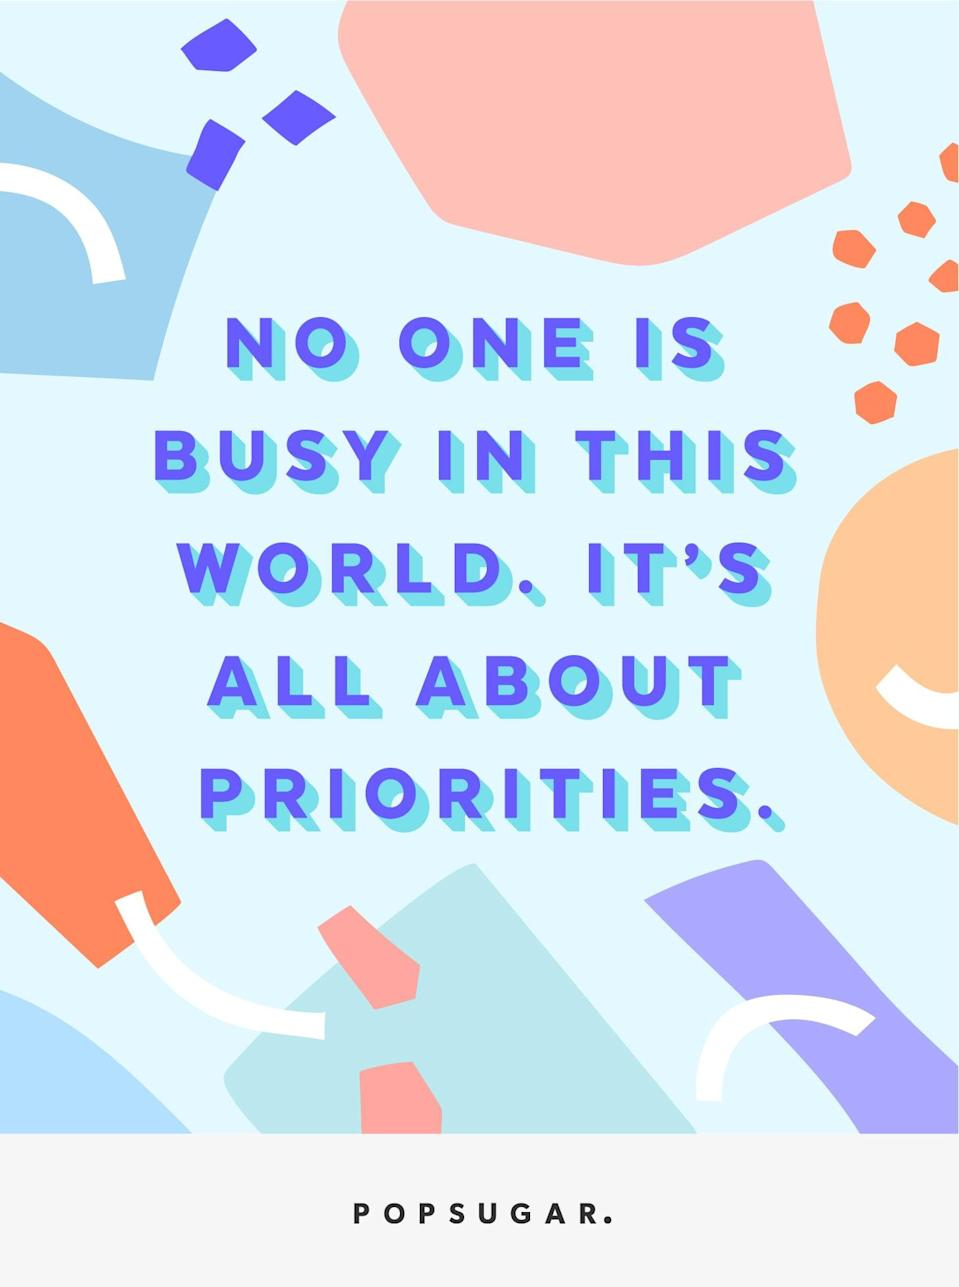 """<p><b>Quote:</b></p> <p>""""No one is busy in this world. It's all about priorities.""""</p> <p><strong>Lesson to learn:</strong></p> <p>The next time you say you're busy, know that it's an excuse. If you truly prioritize something, you will make time for it. Be it relationships, friendships, or something else - you always have time for anything if you make time.</p>"""